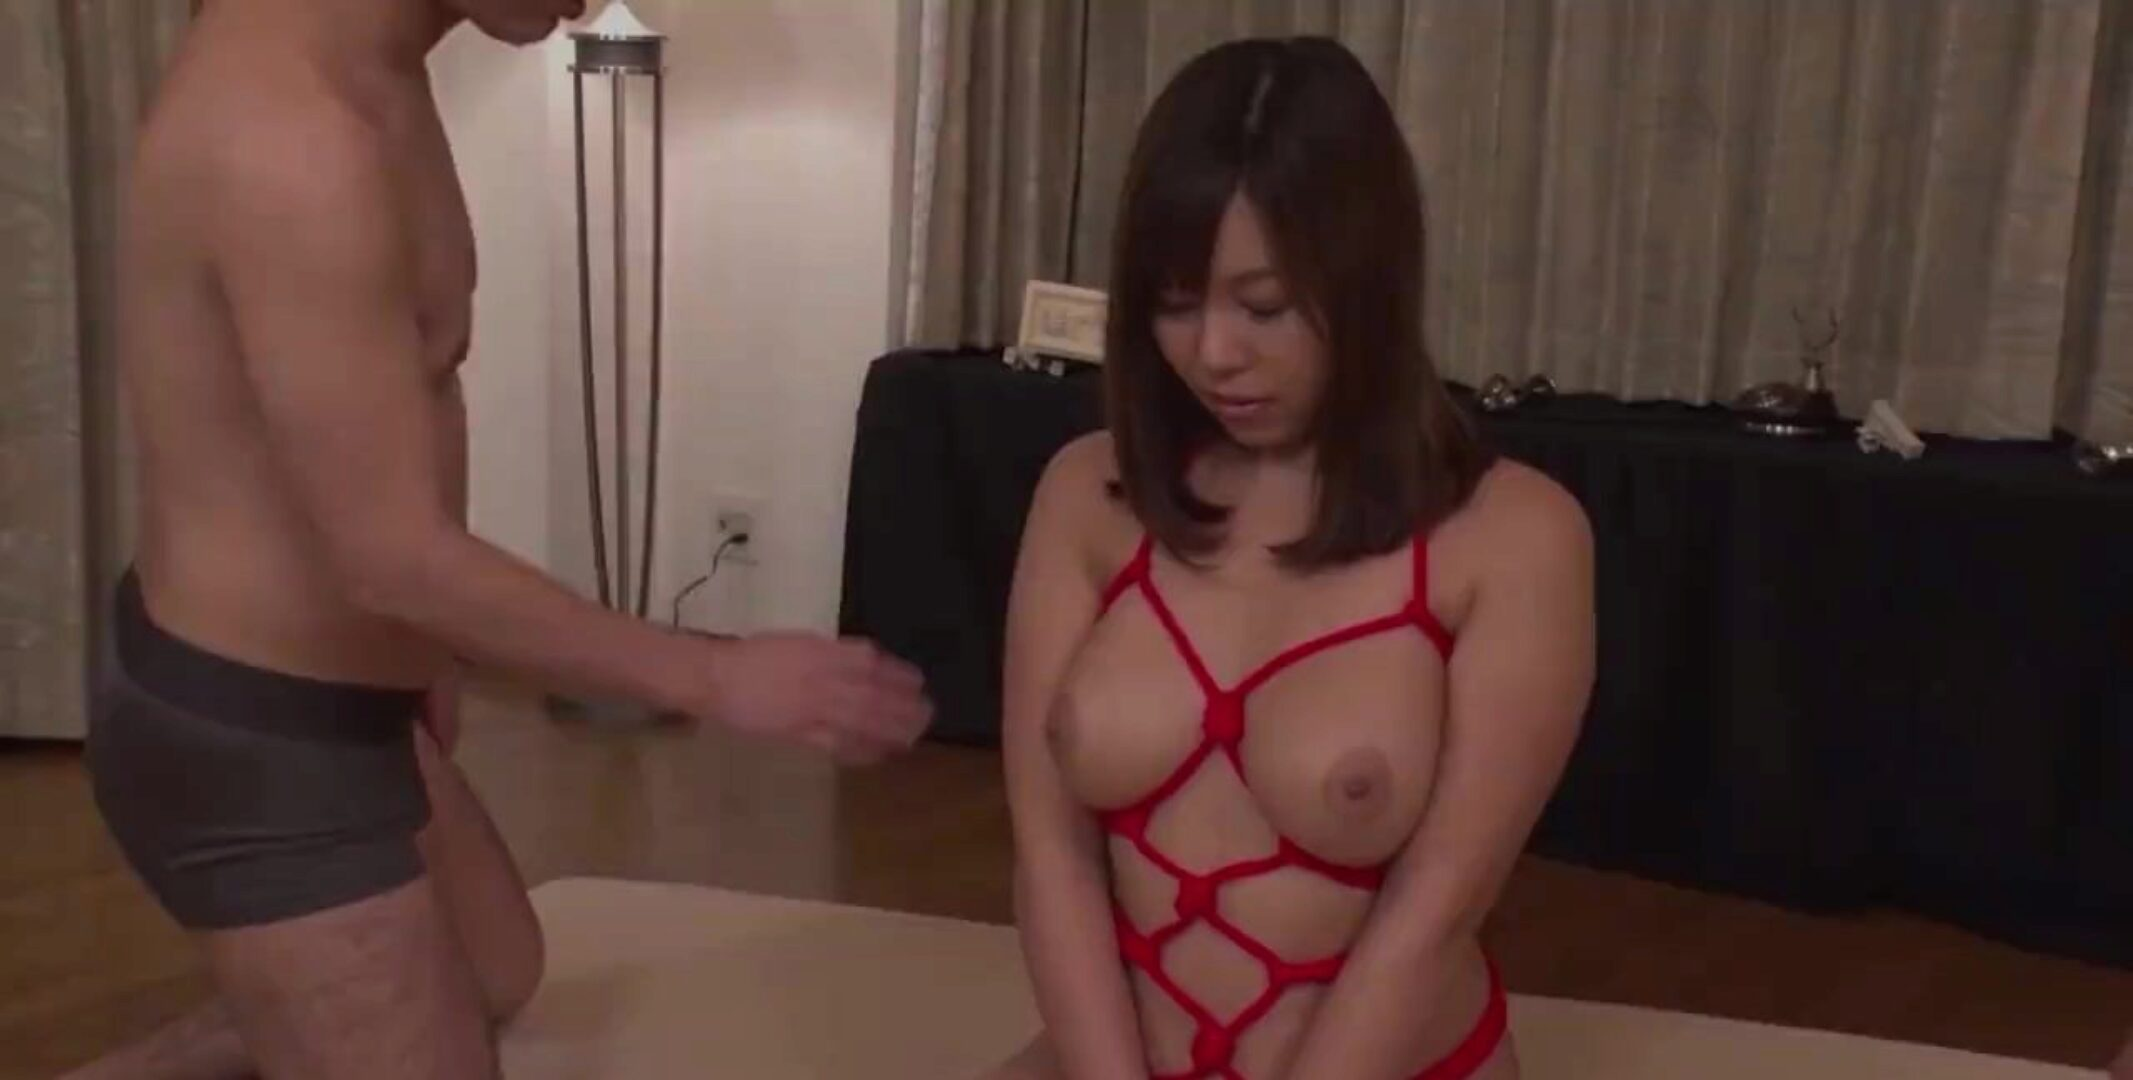 Multiorgasmic Japanese Teen With Big Tits | Uncensored